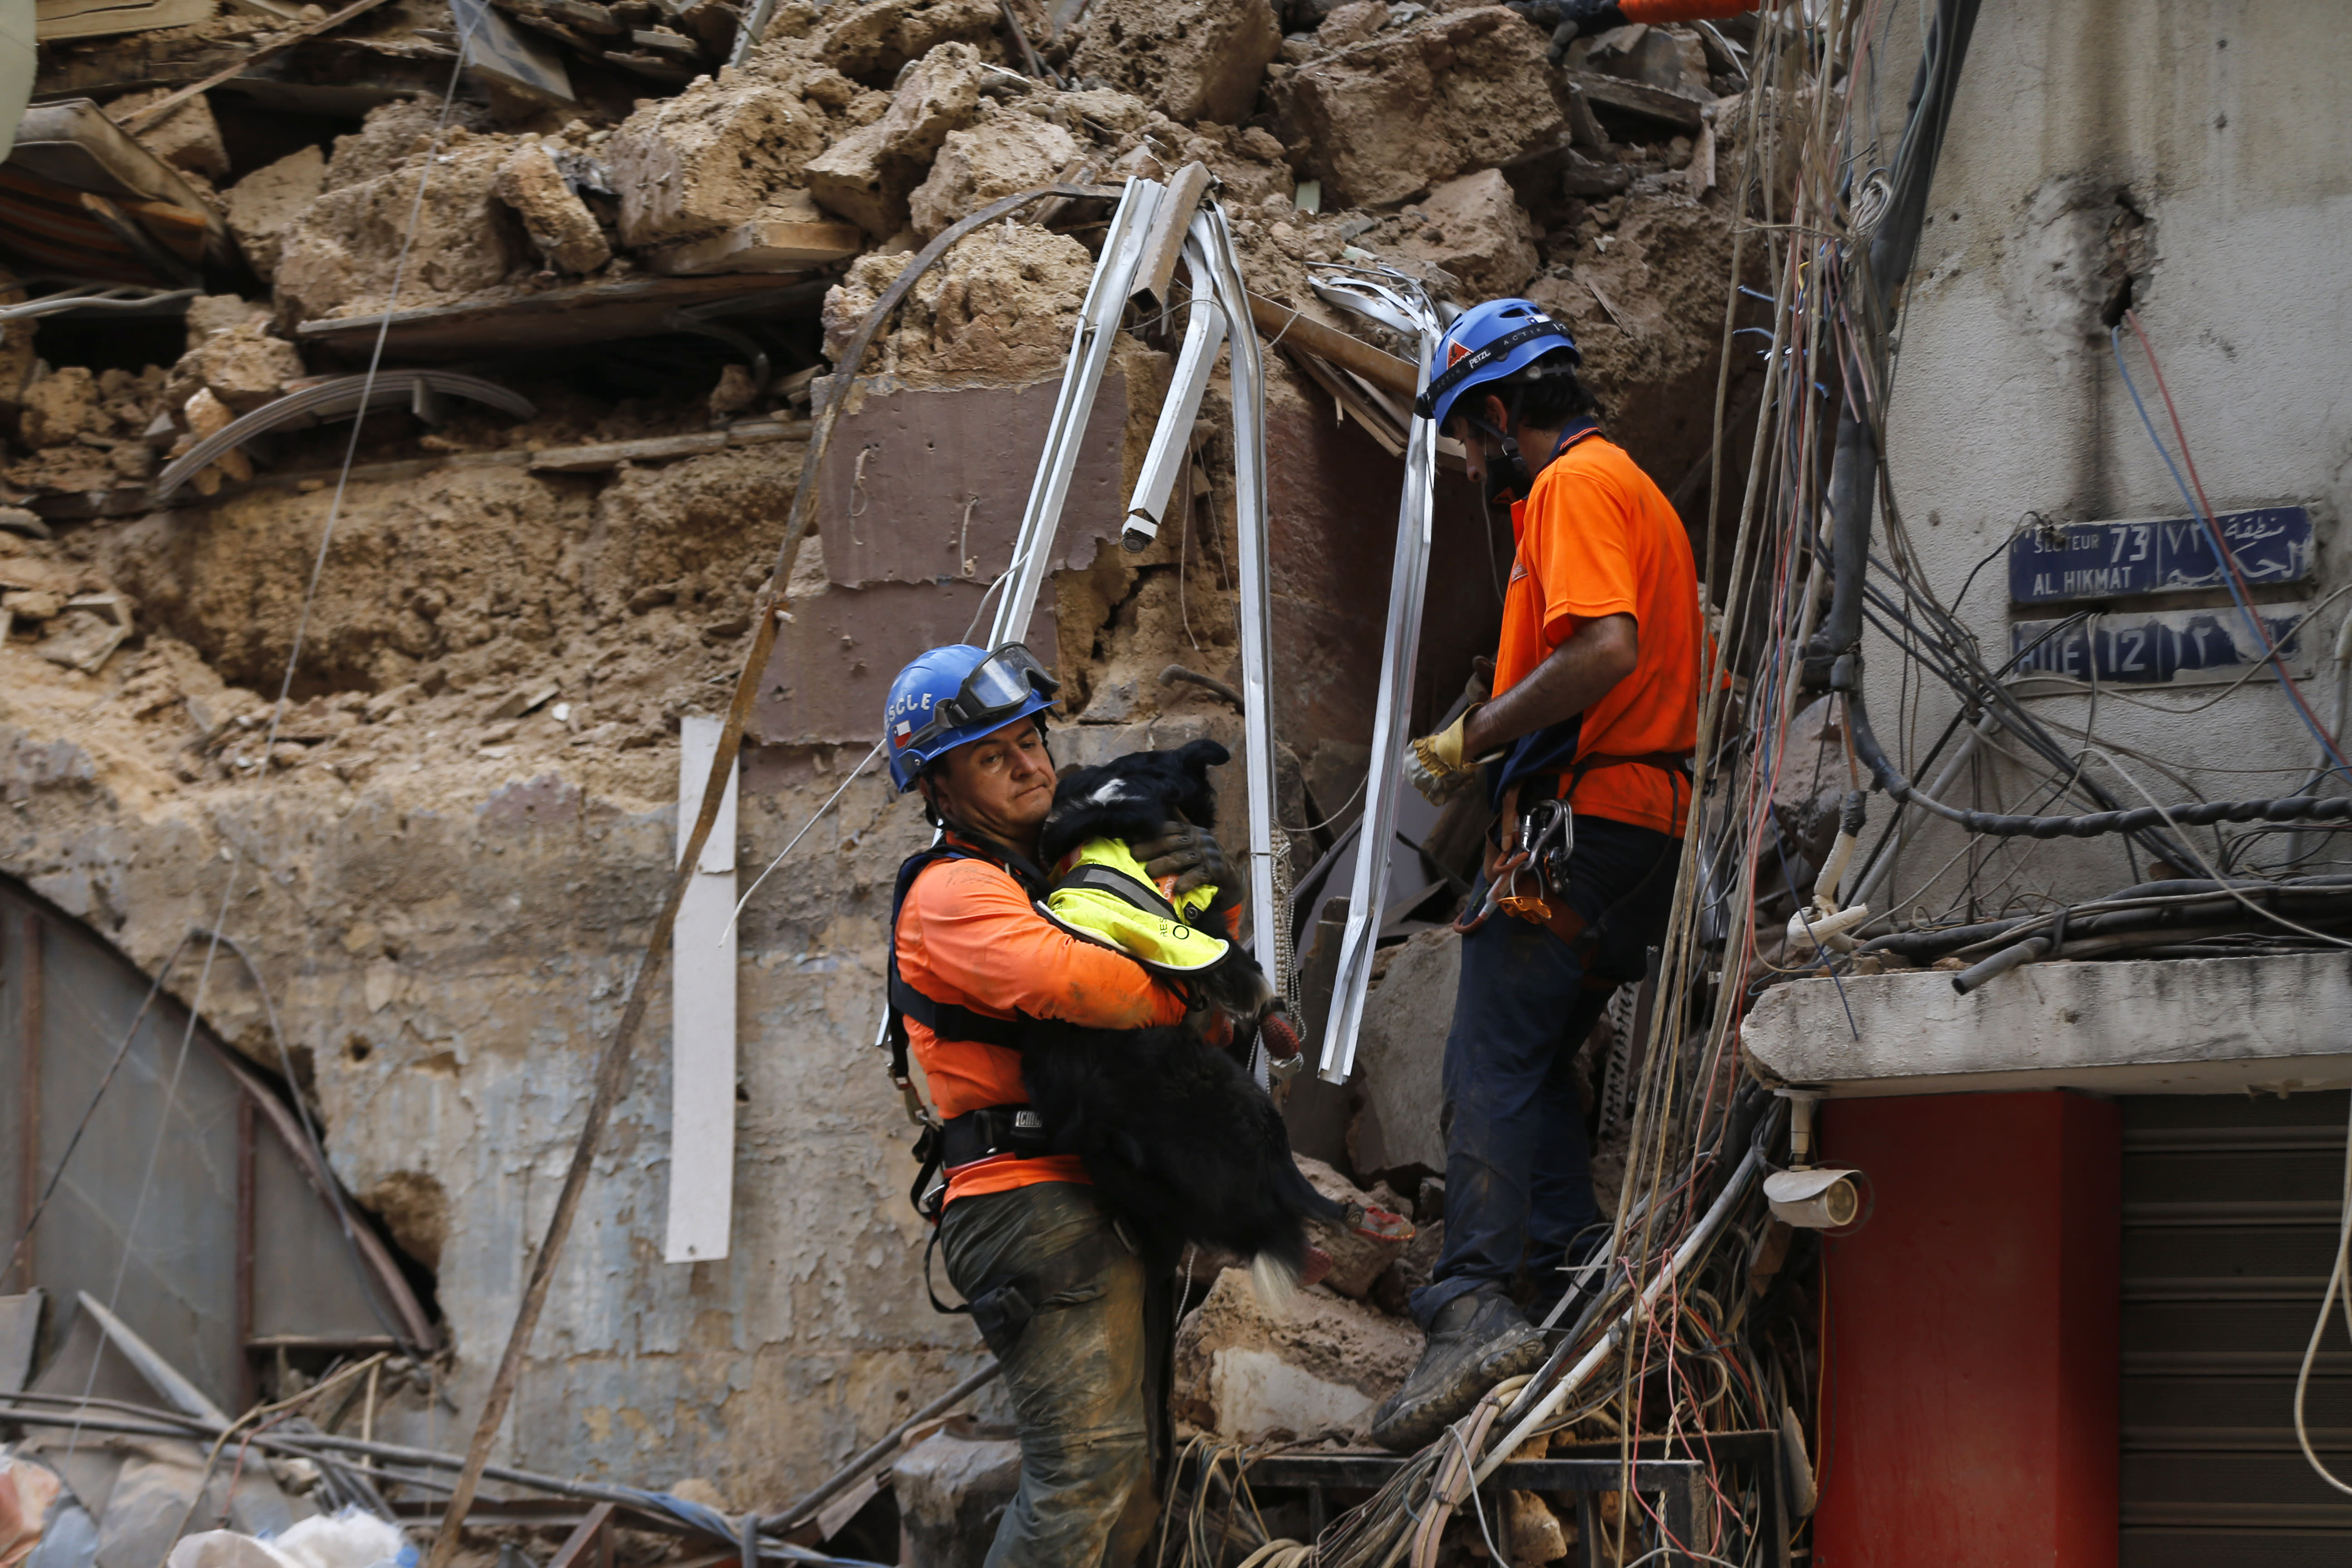 Rescuers search Beirut rubble for second day after pulse detected